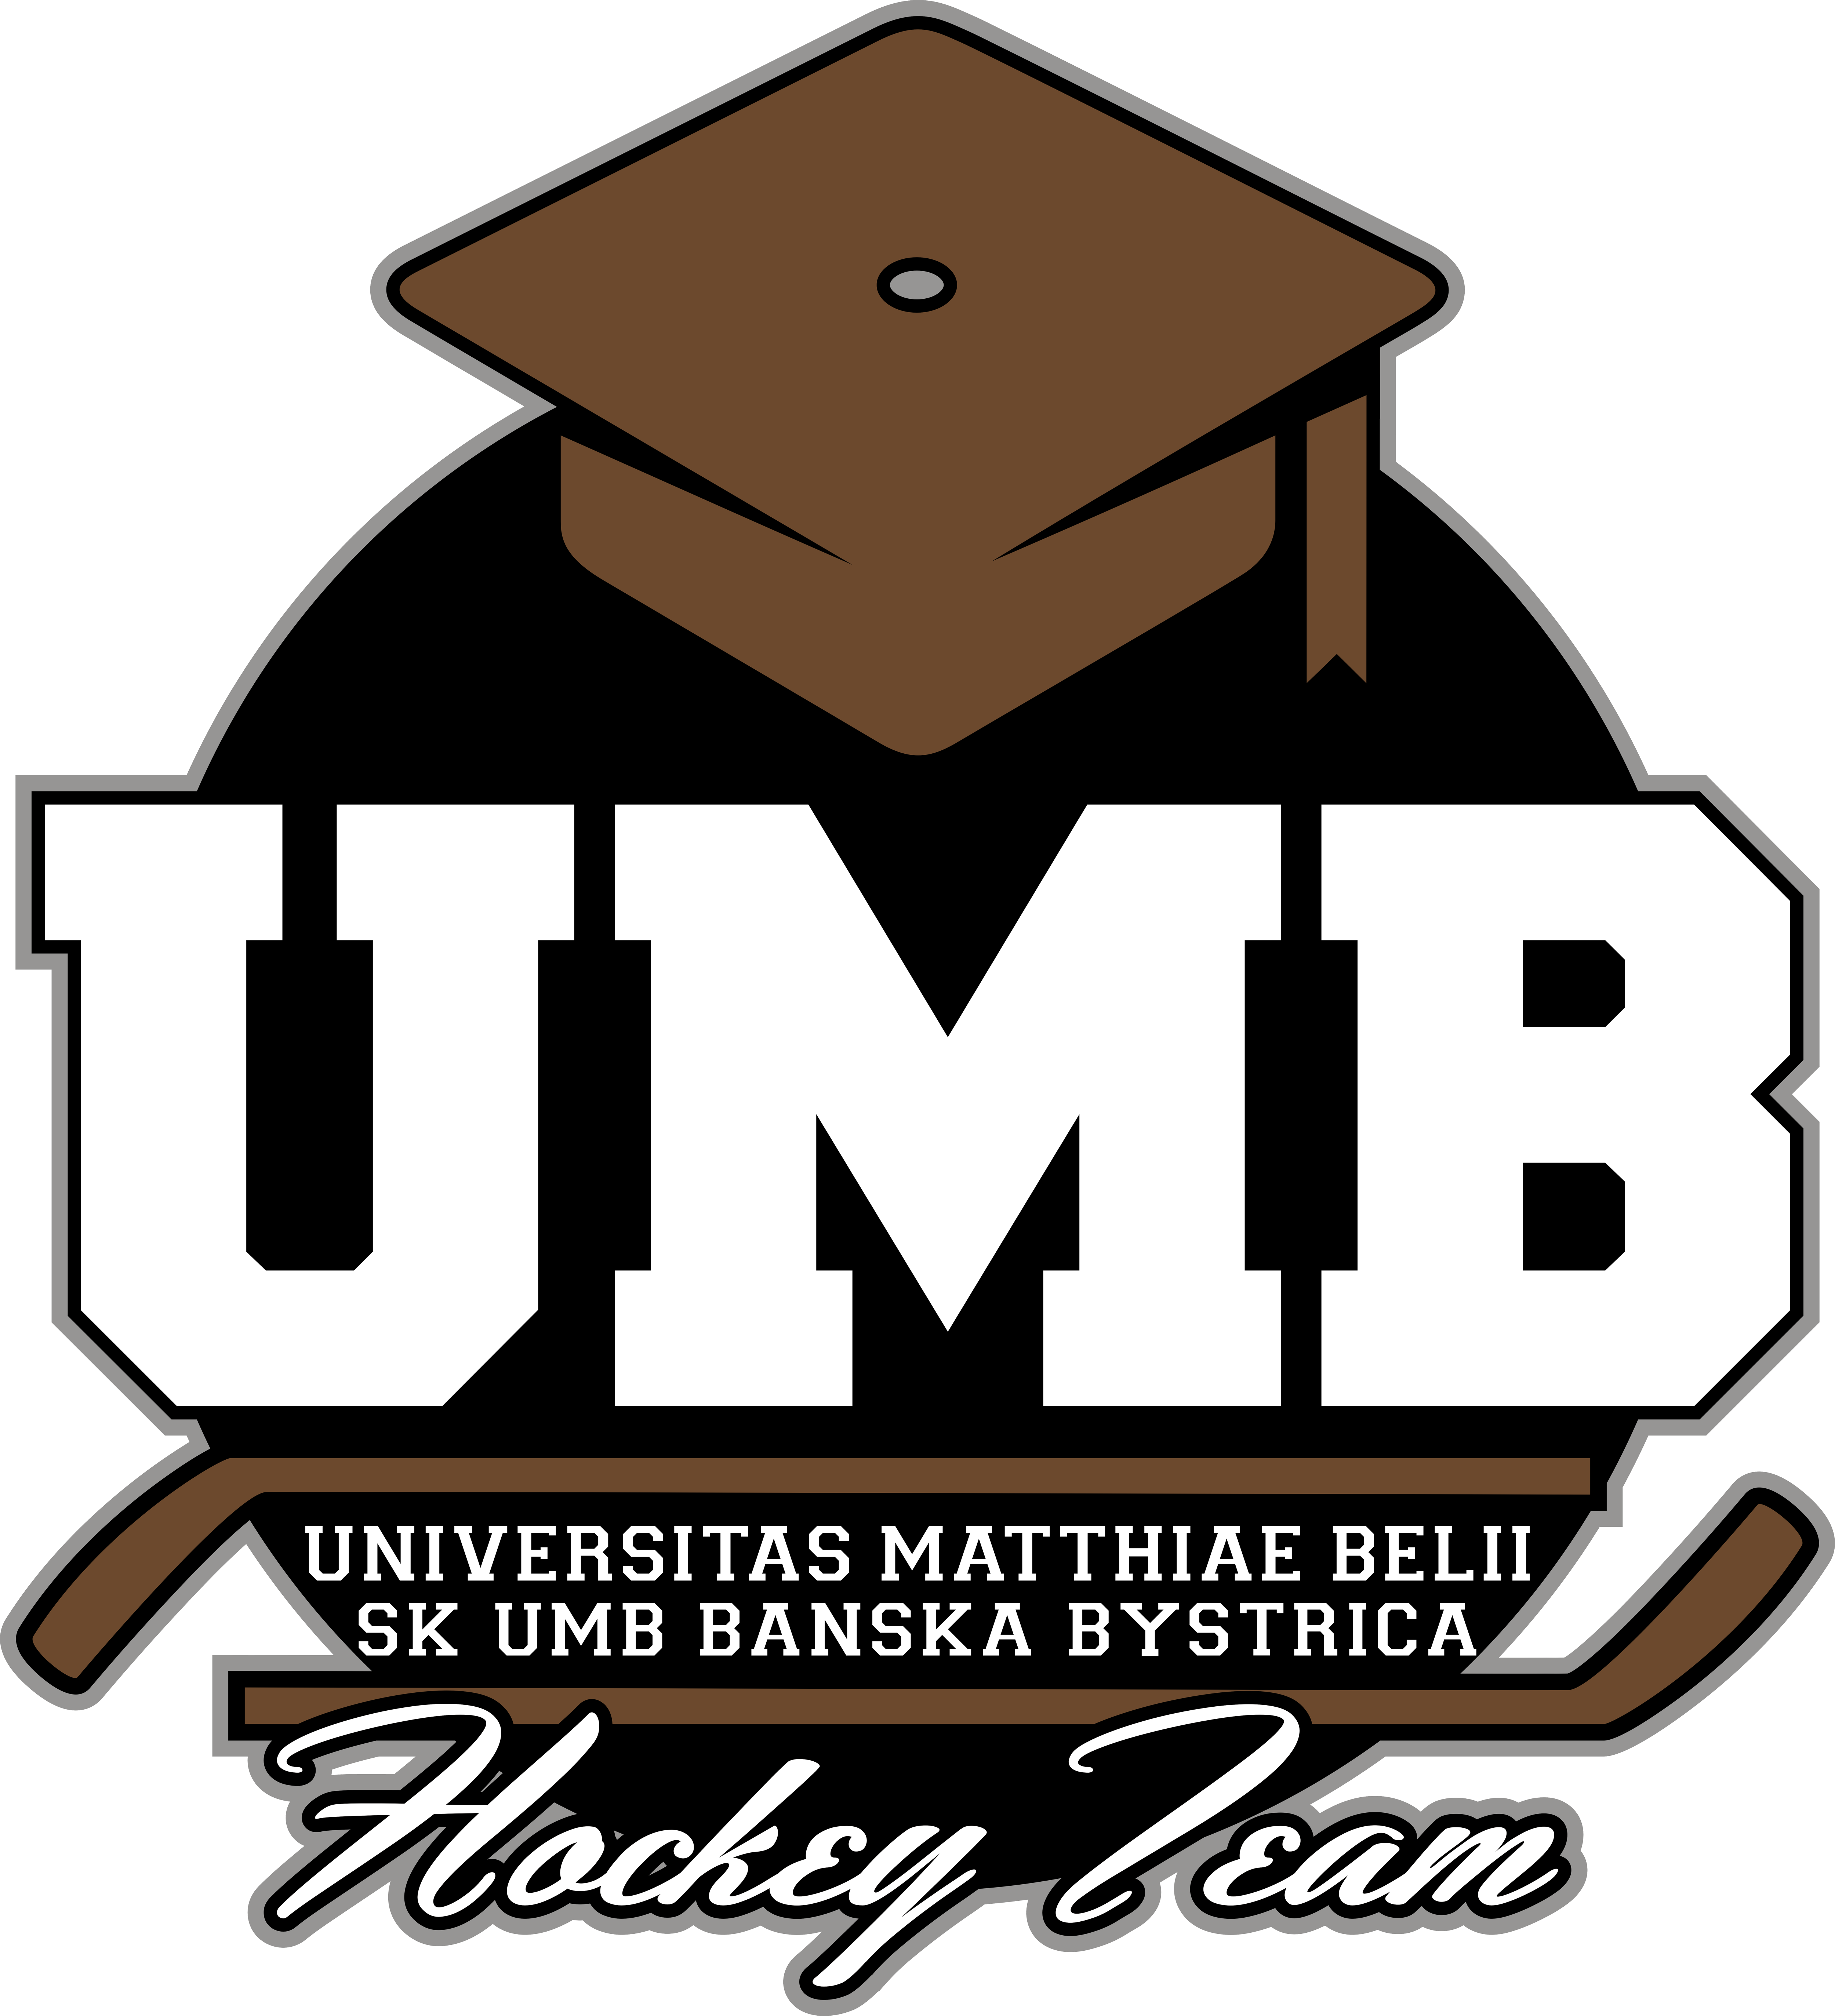 Umb hockey team